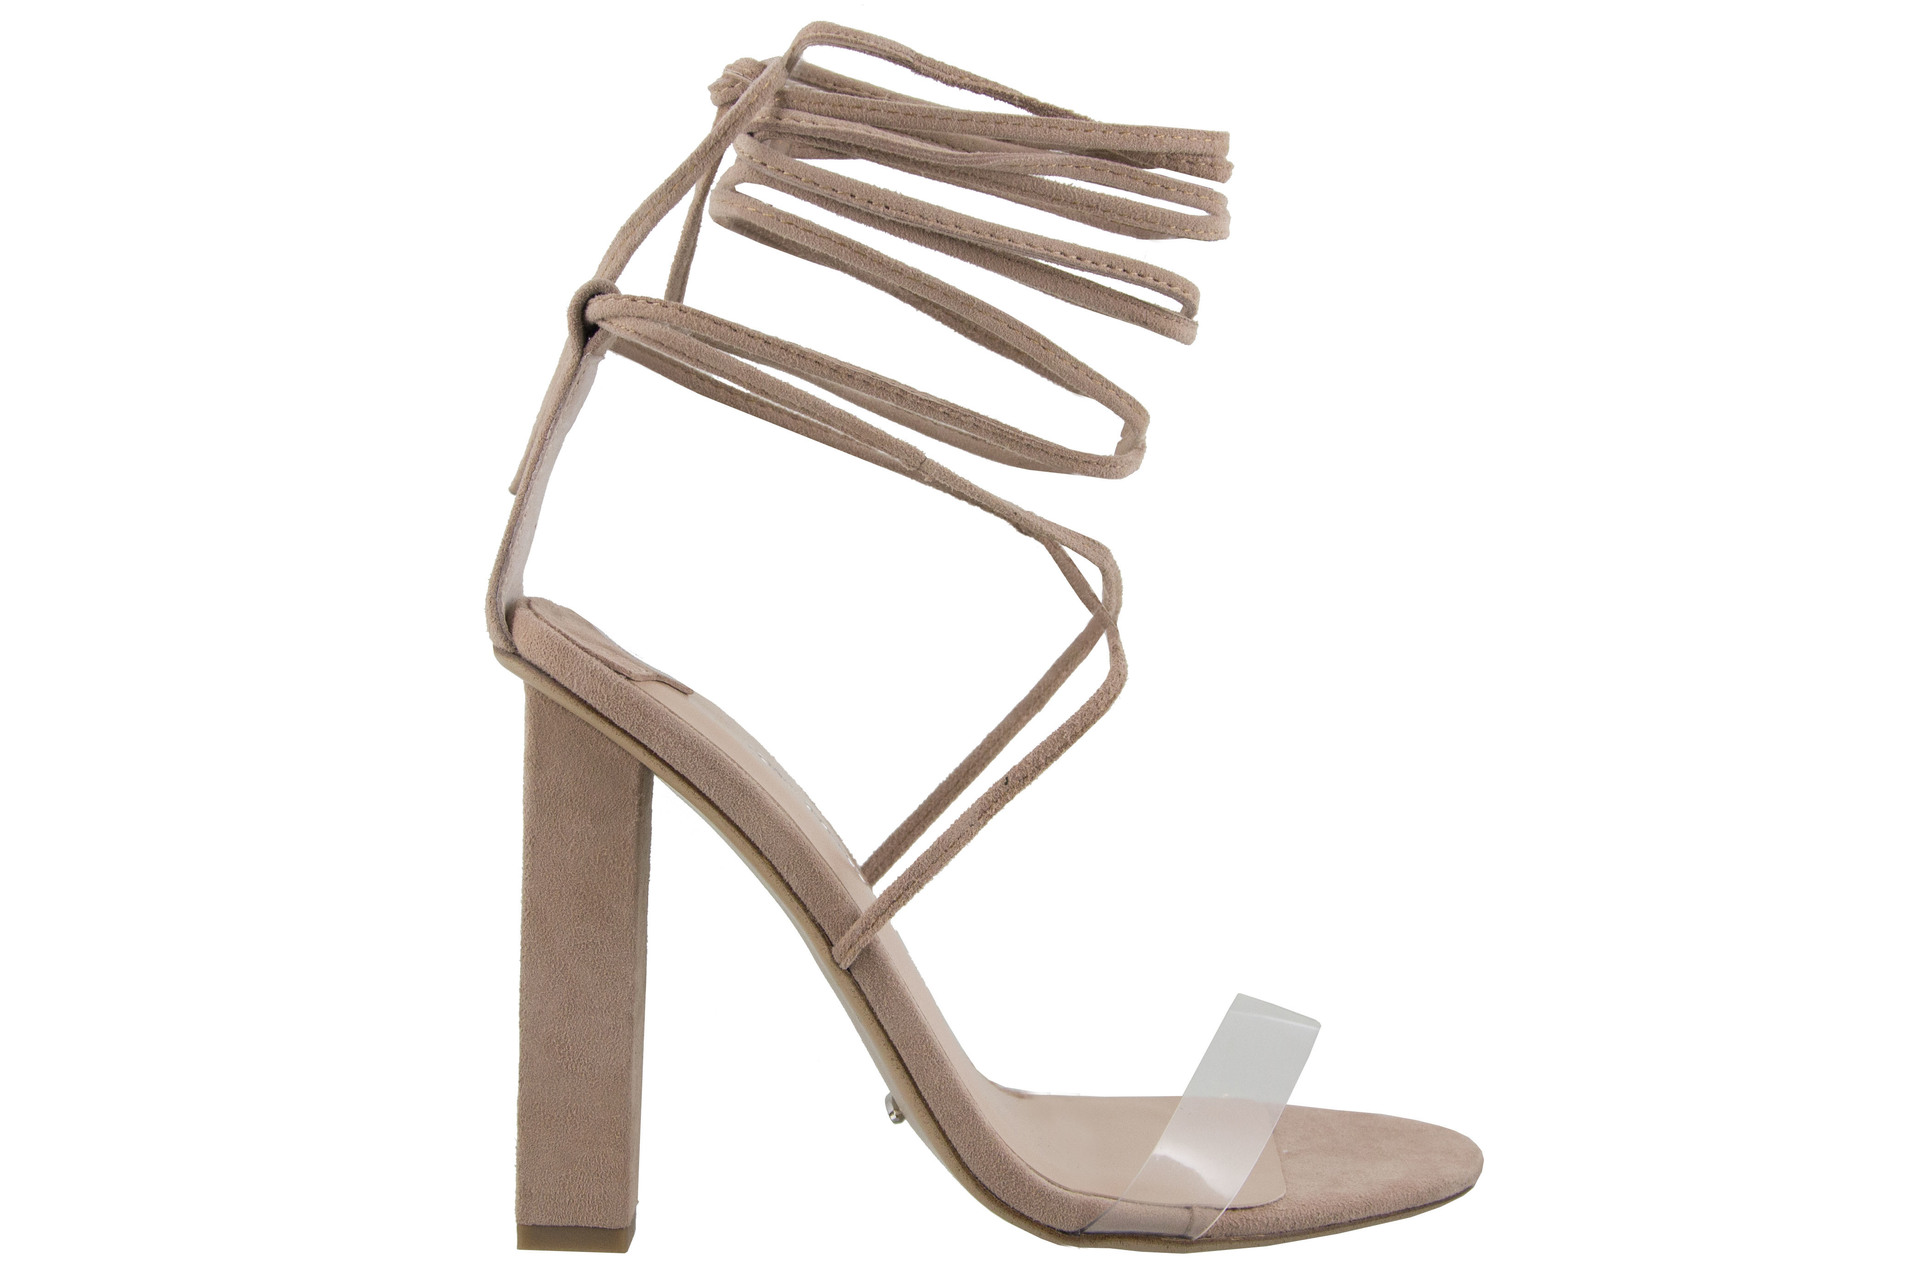 72dpi-23138151ff-Kendall-ClearBlushKidSuede